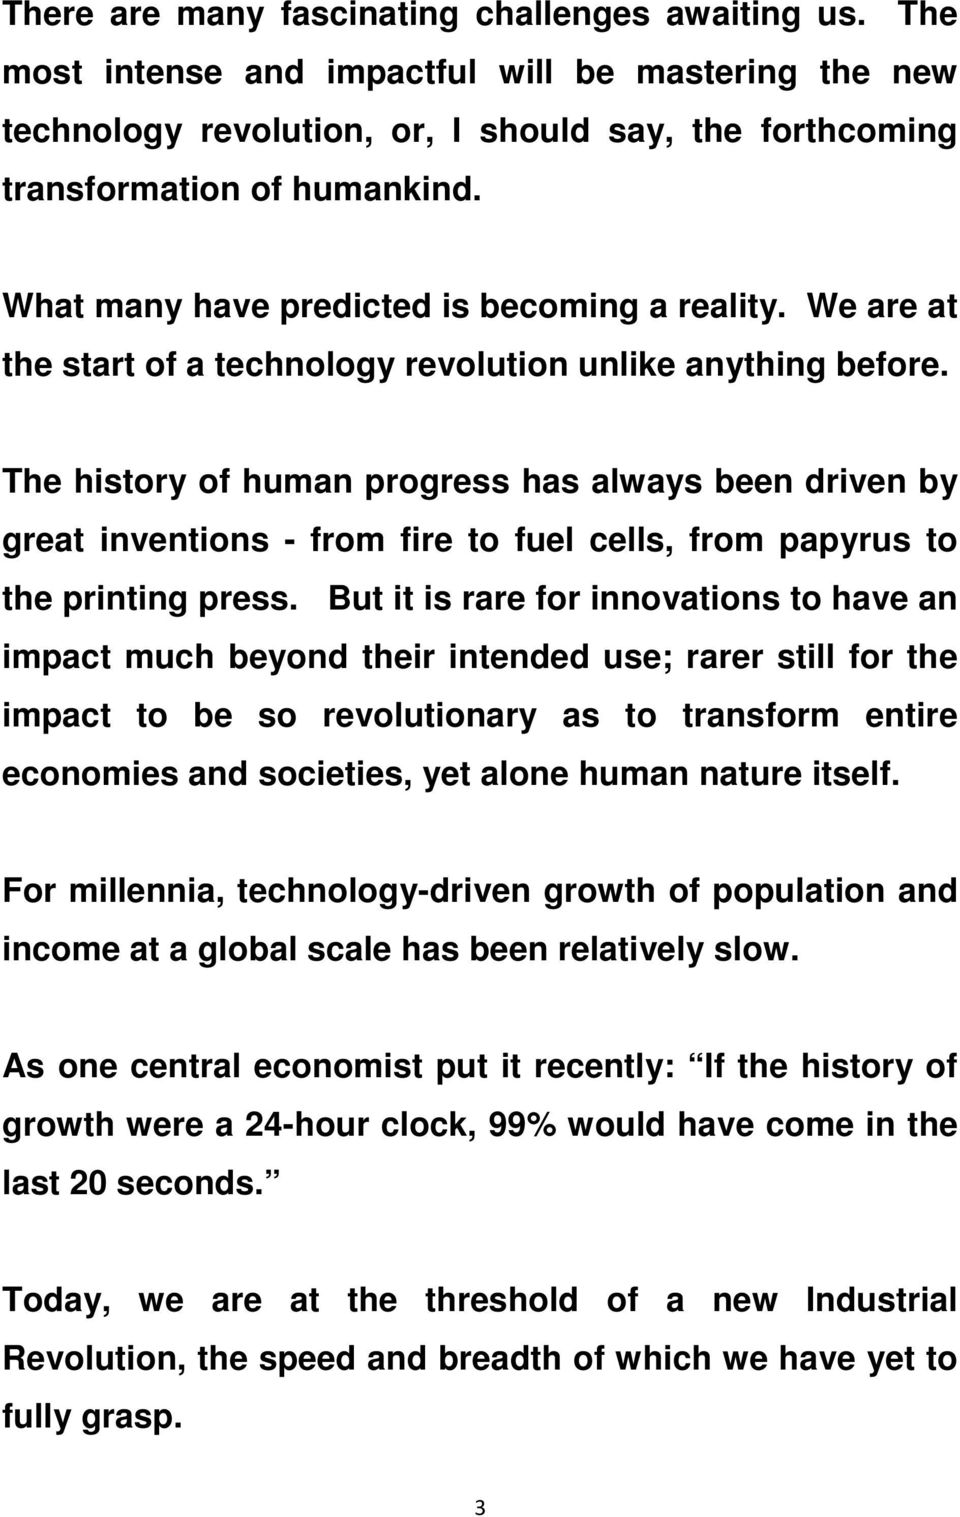 The history of human progress has always been driven by great inventions - from fire to fuel cells, from papyrus to the printing press.